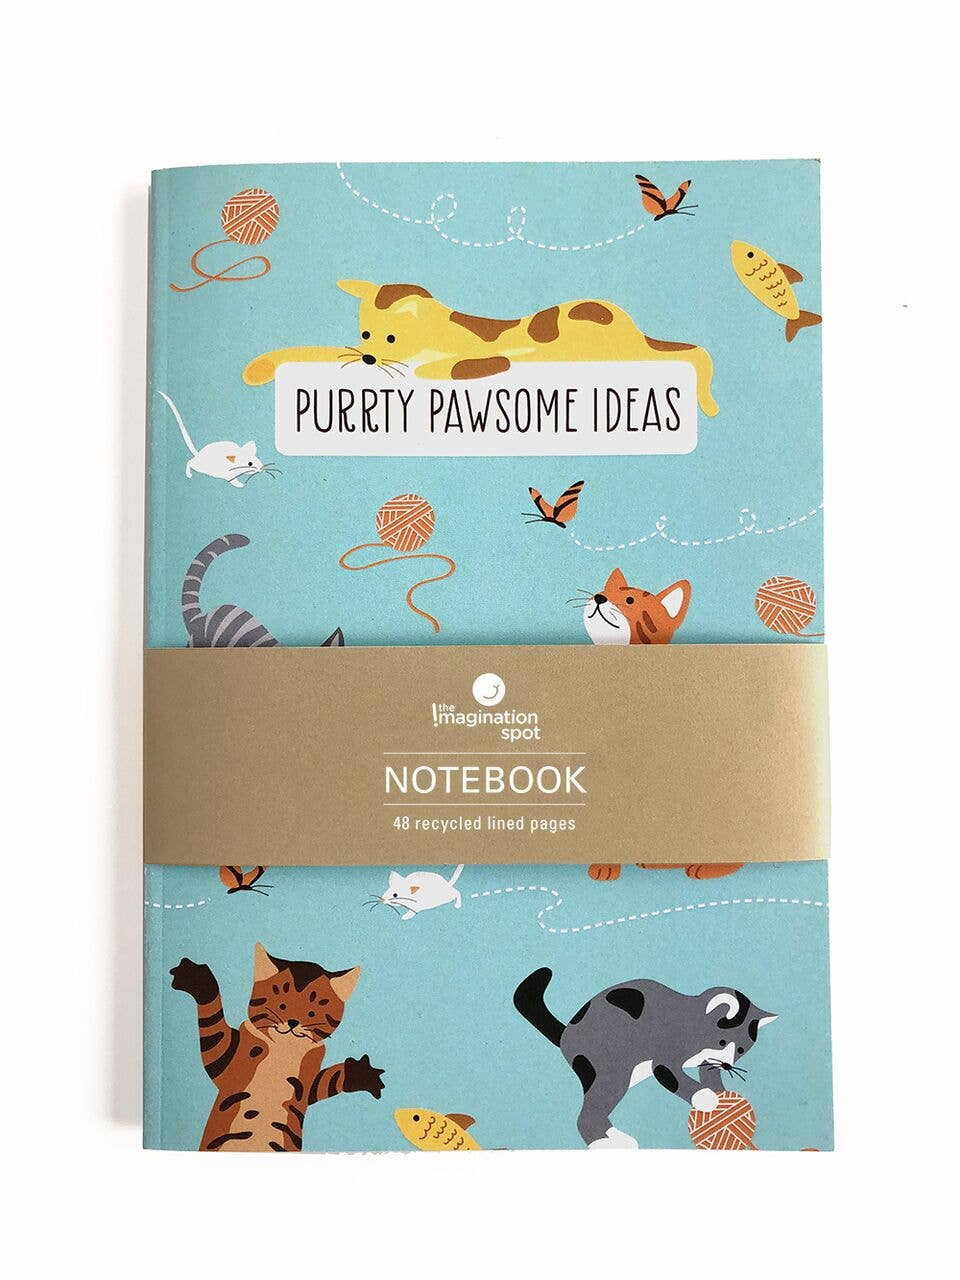 Purrty Pawsome -  Cat Notebook